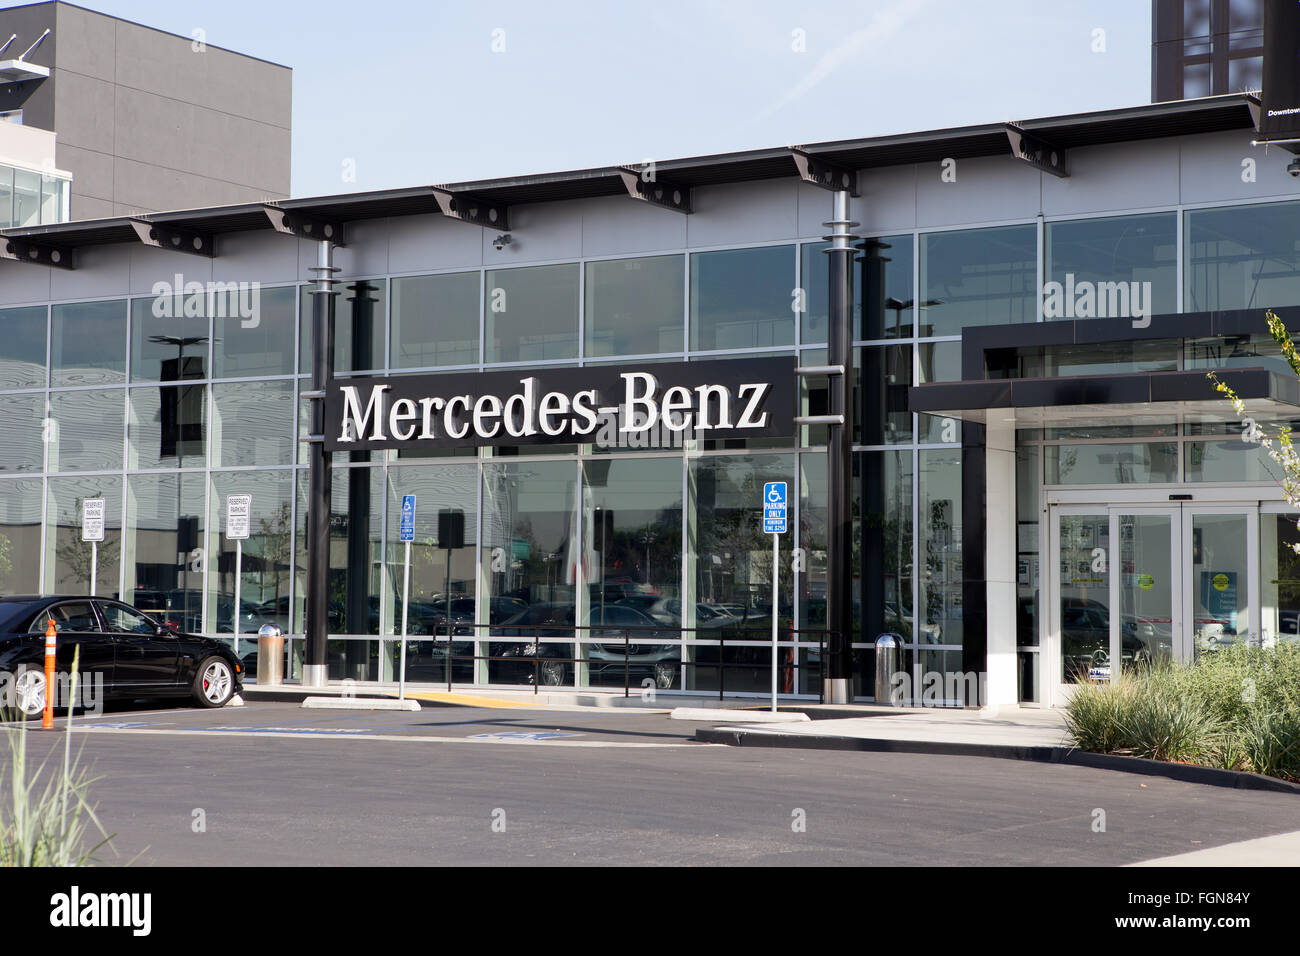 Mercedes Benz Dealership In Los Angeles California   Stock Image